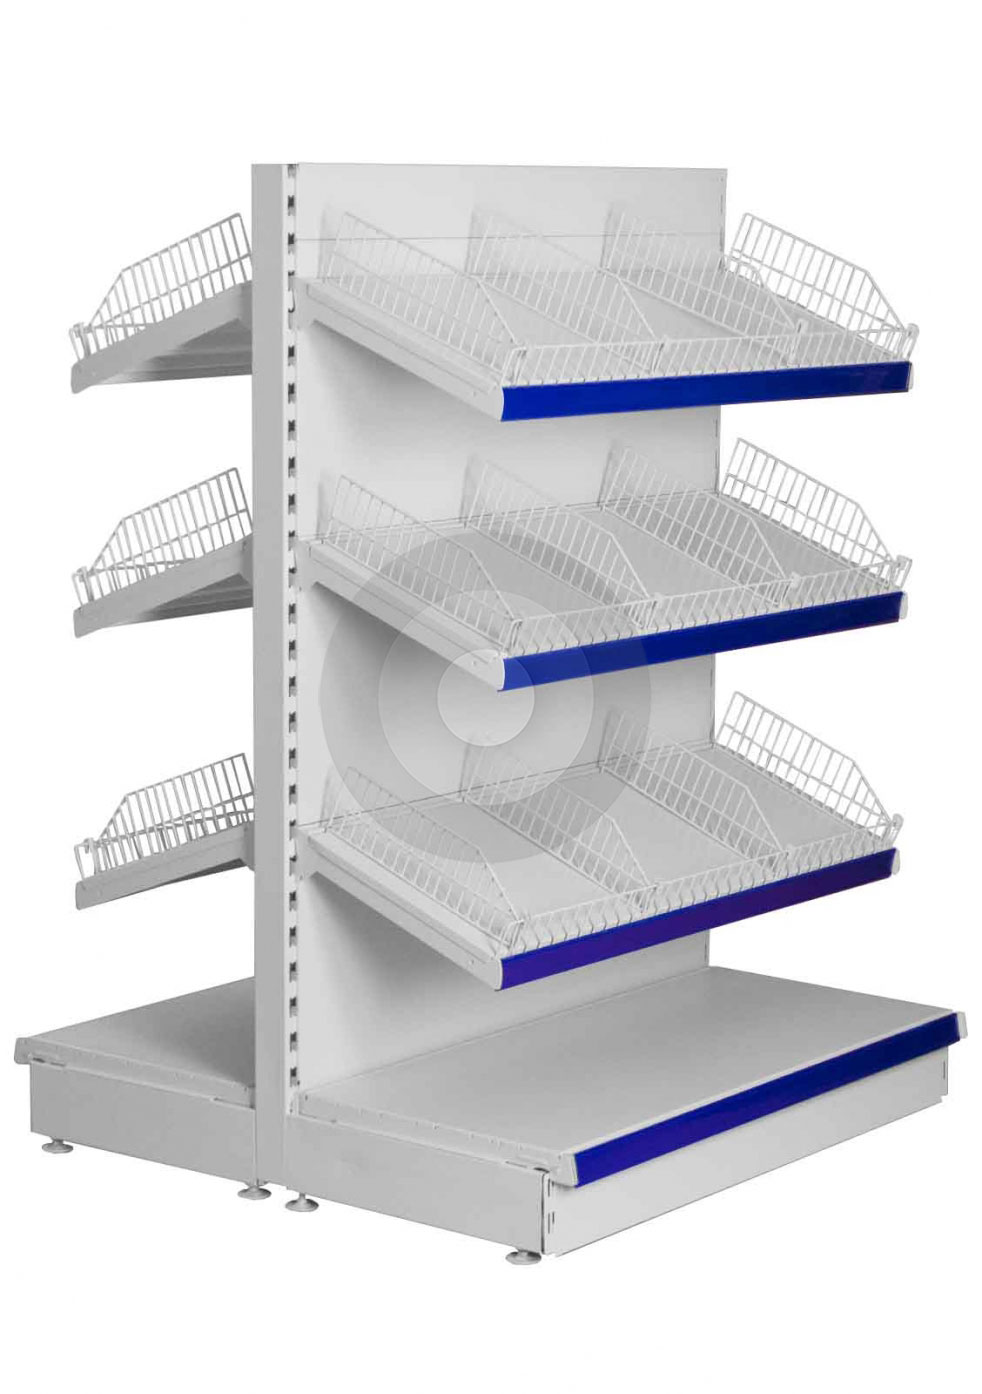 Low Gondola Shelving With Wire Risers And Dividers